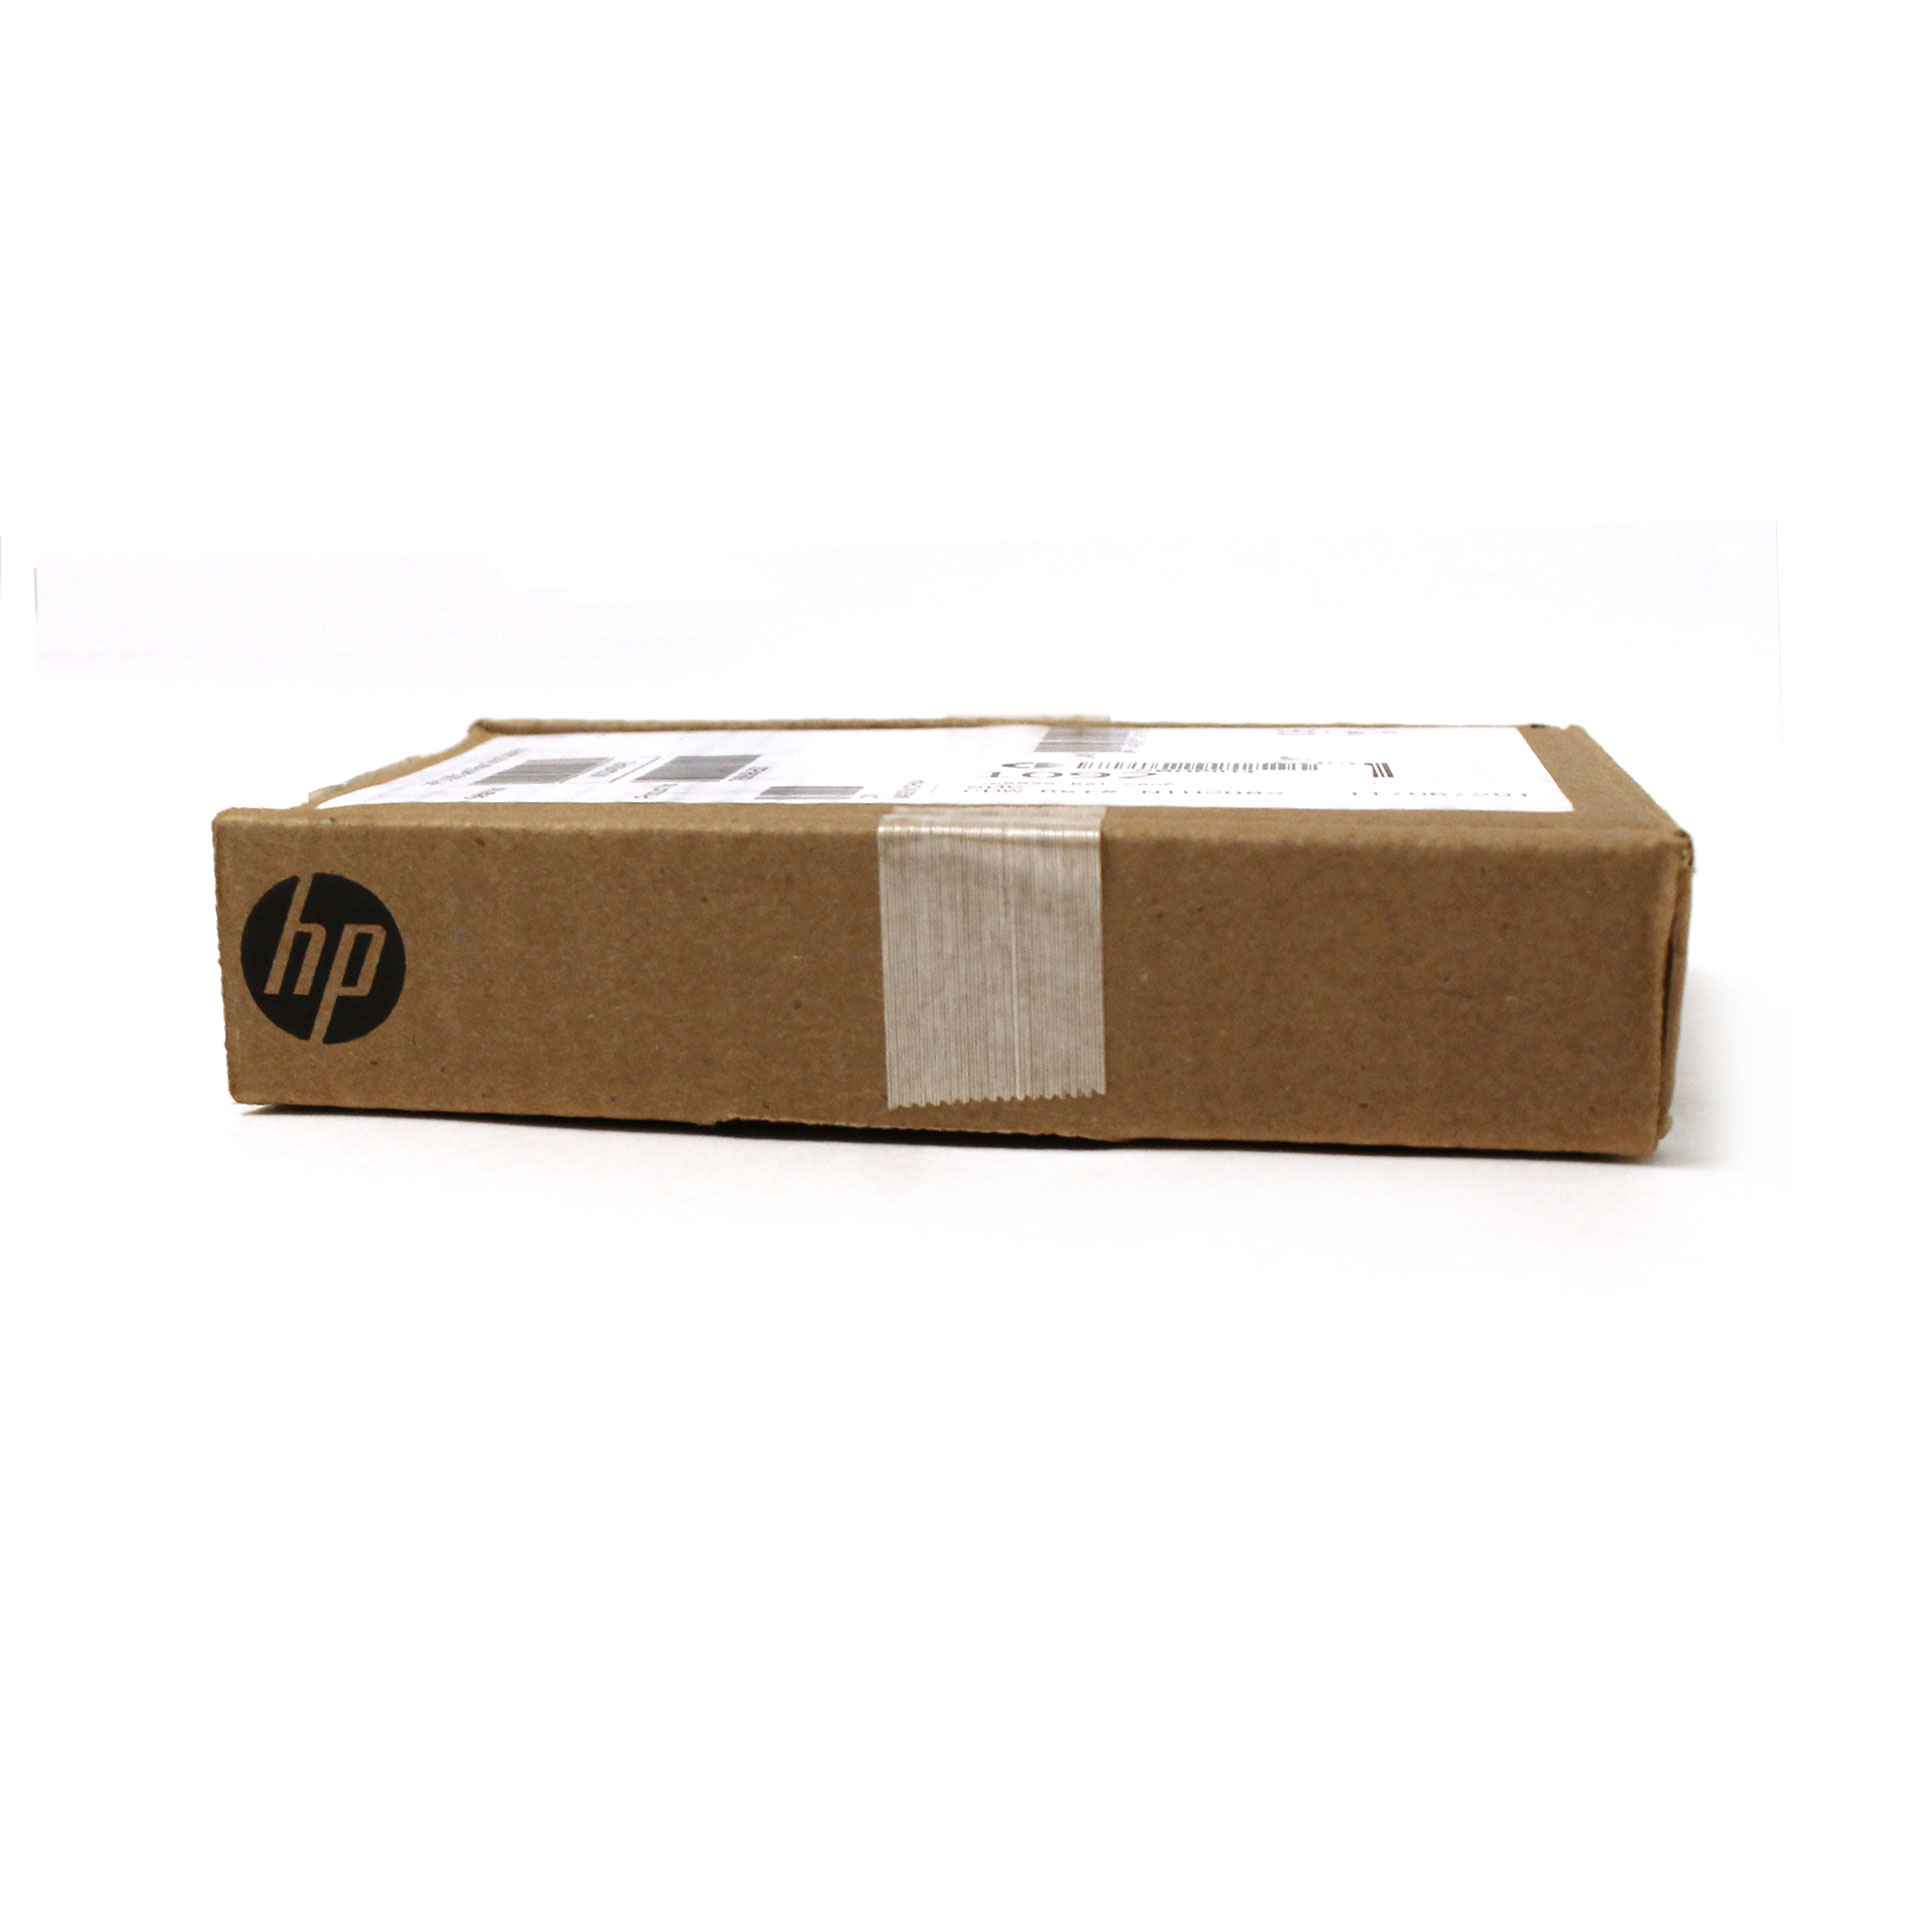 Serial Cable Kit HP DL380 Gen9 Kit 768896-B21